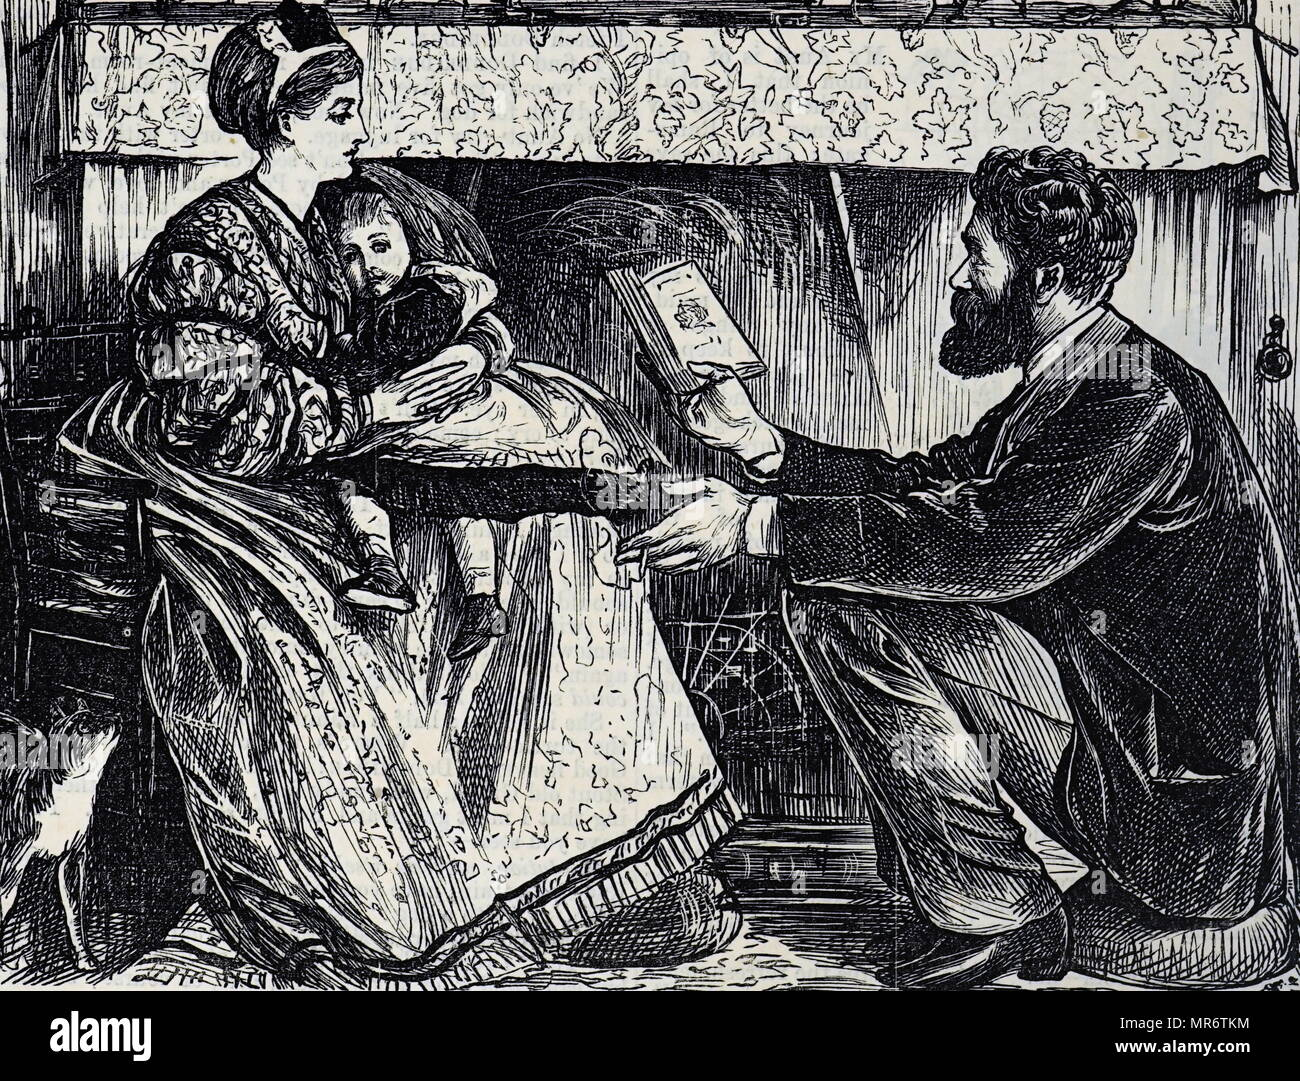 Cartoon titled 'A Logical Refutation of Mr Darwin's Theory' - a father tries to explain Darwin's Theory to his Wife and daughter. Illustrated by George du Maurier (1834-1896) a Franco-British cartoonist and author. Dated 19th century - Stock Image